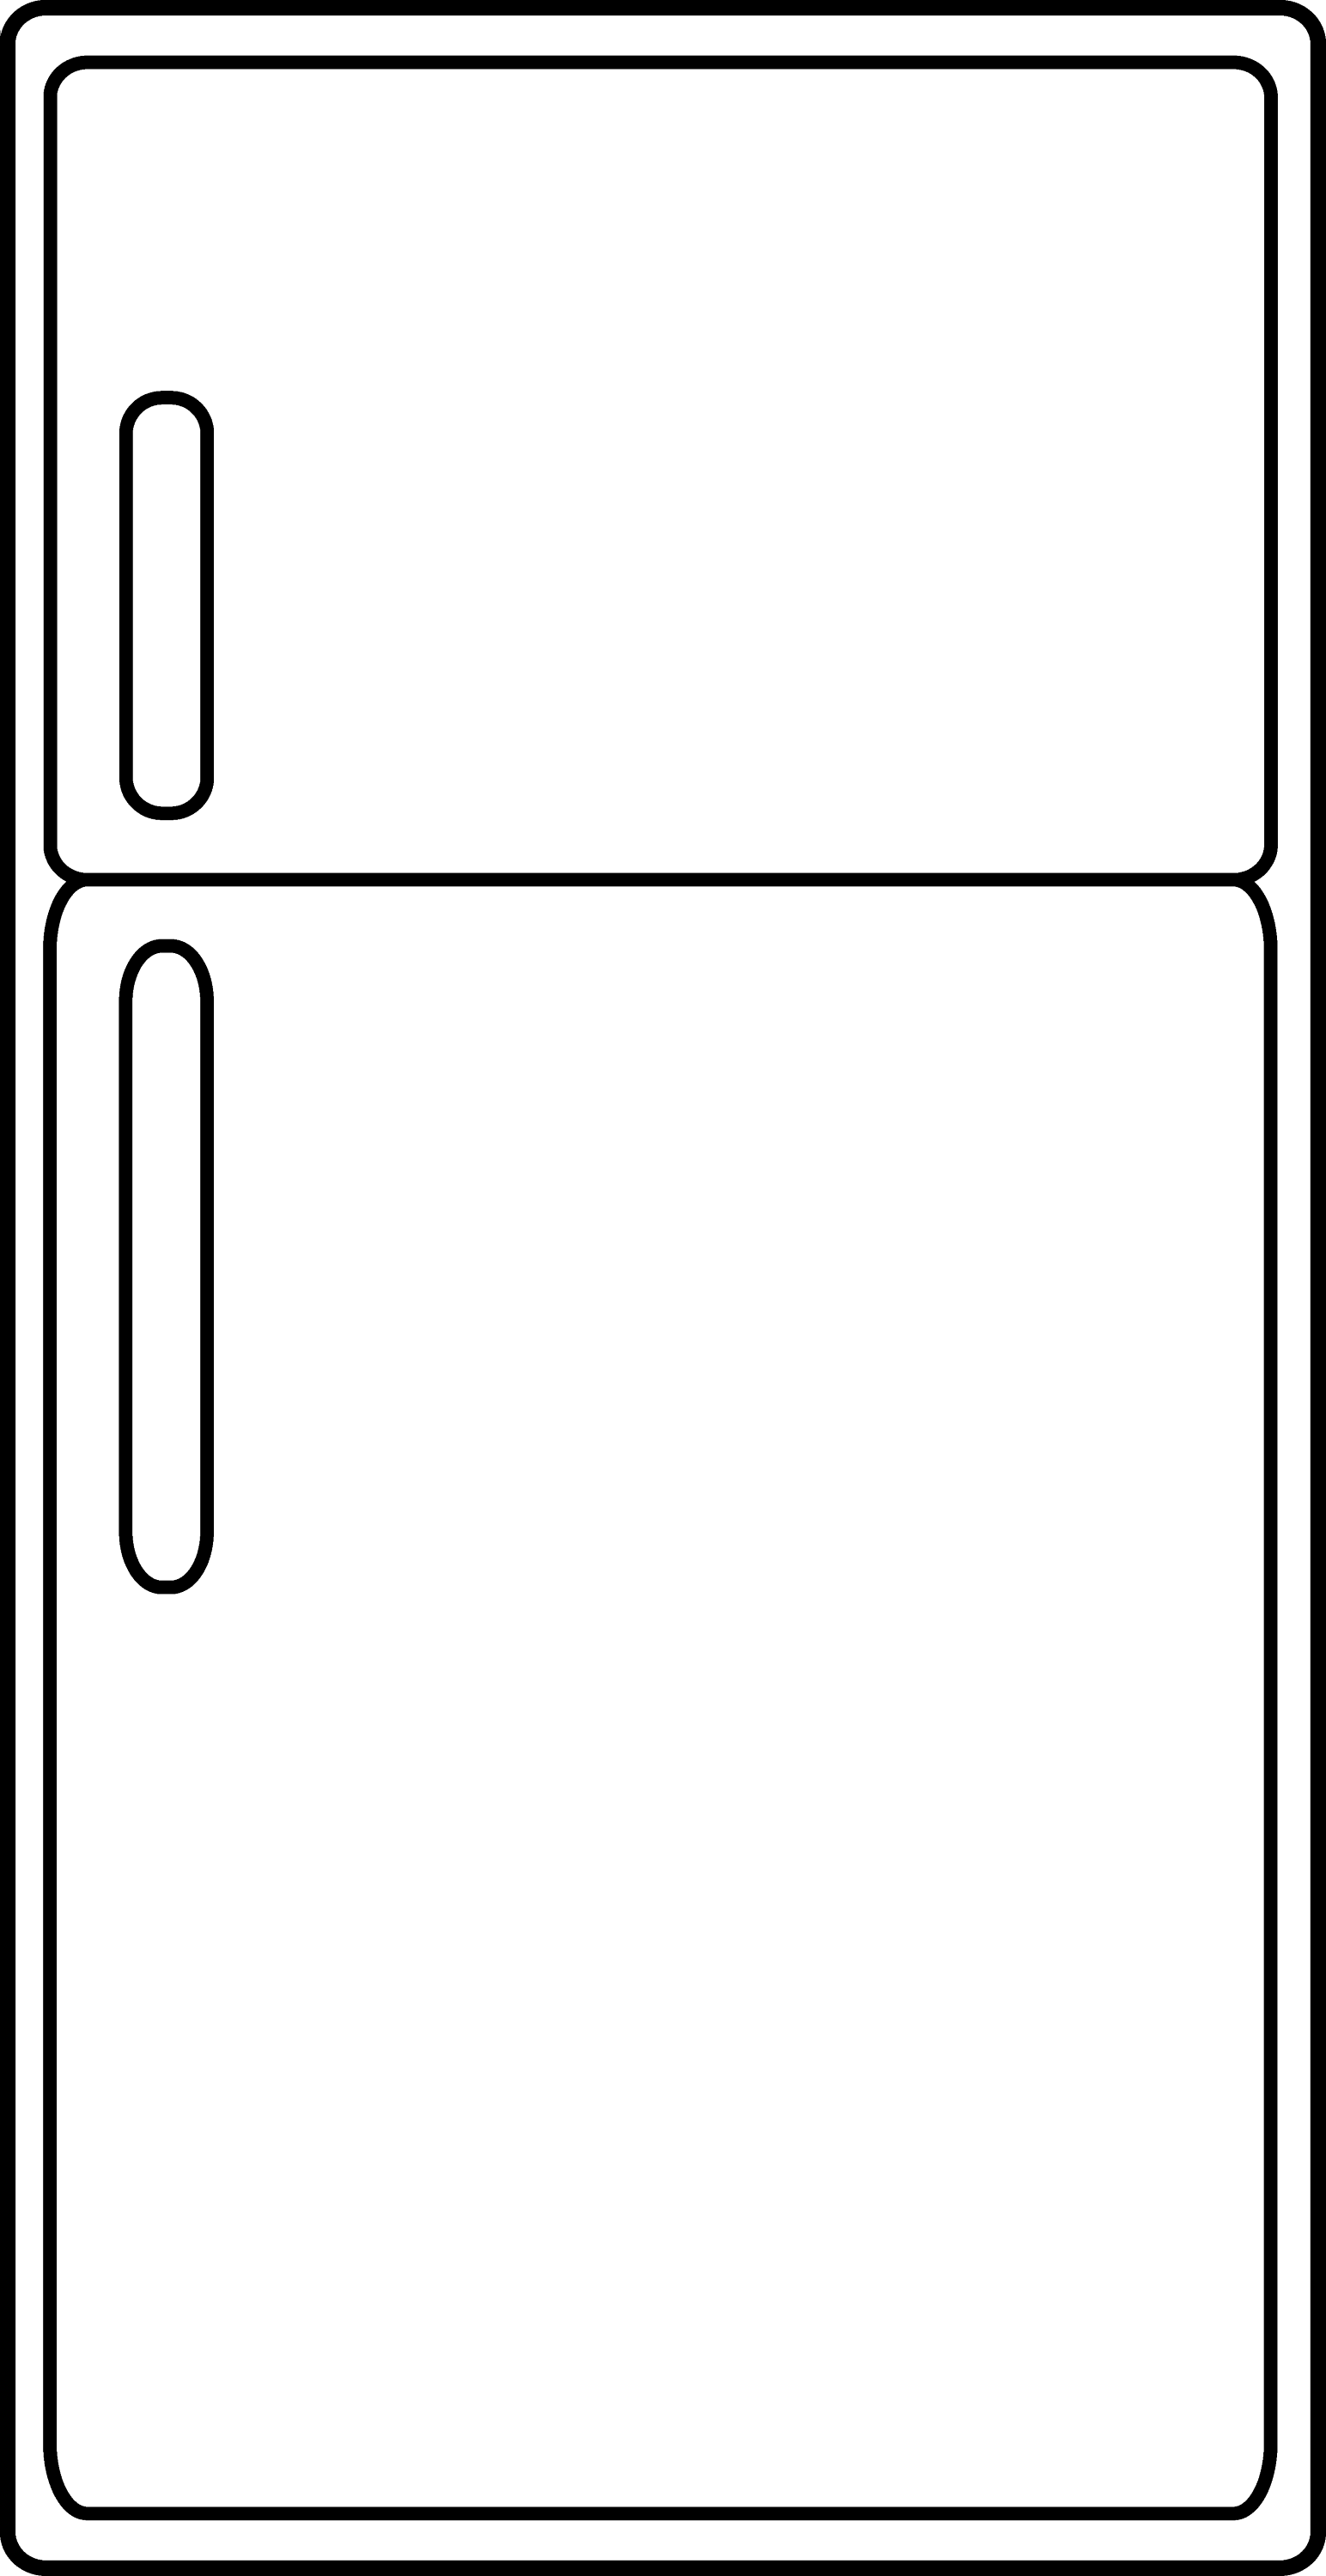 freezer clipart black and white. simple refrigerator outline freezer clipart black and white